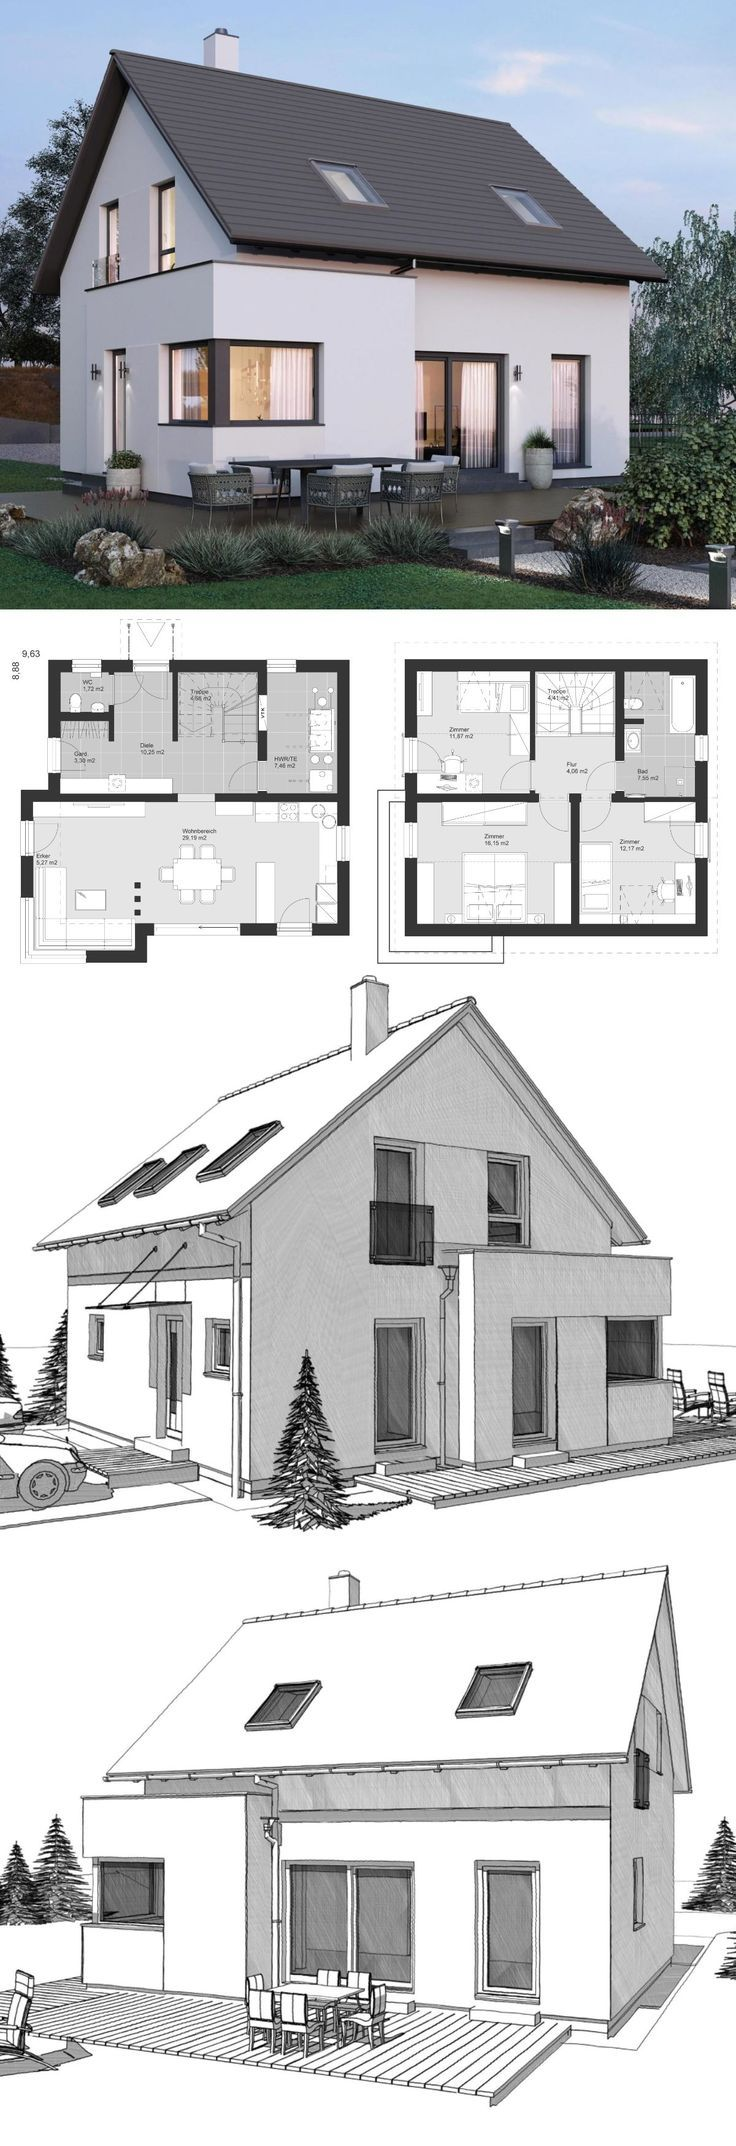 fba02a37723e5ac64d4fe27c618a3309 - 40+ Small House Design In Europe Images